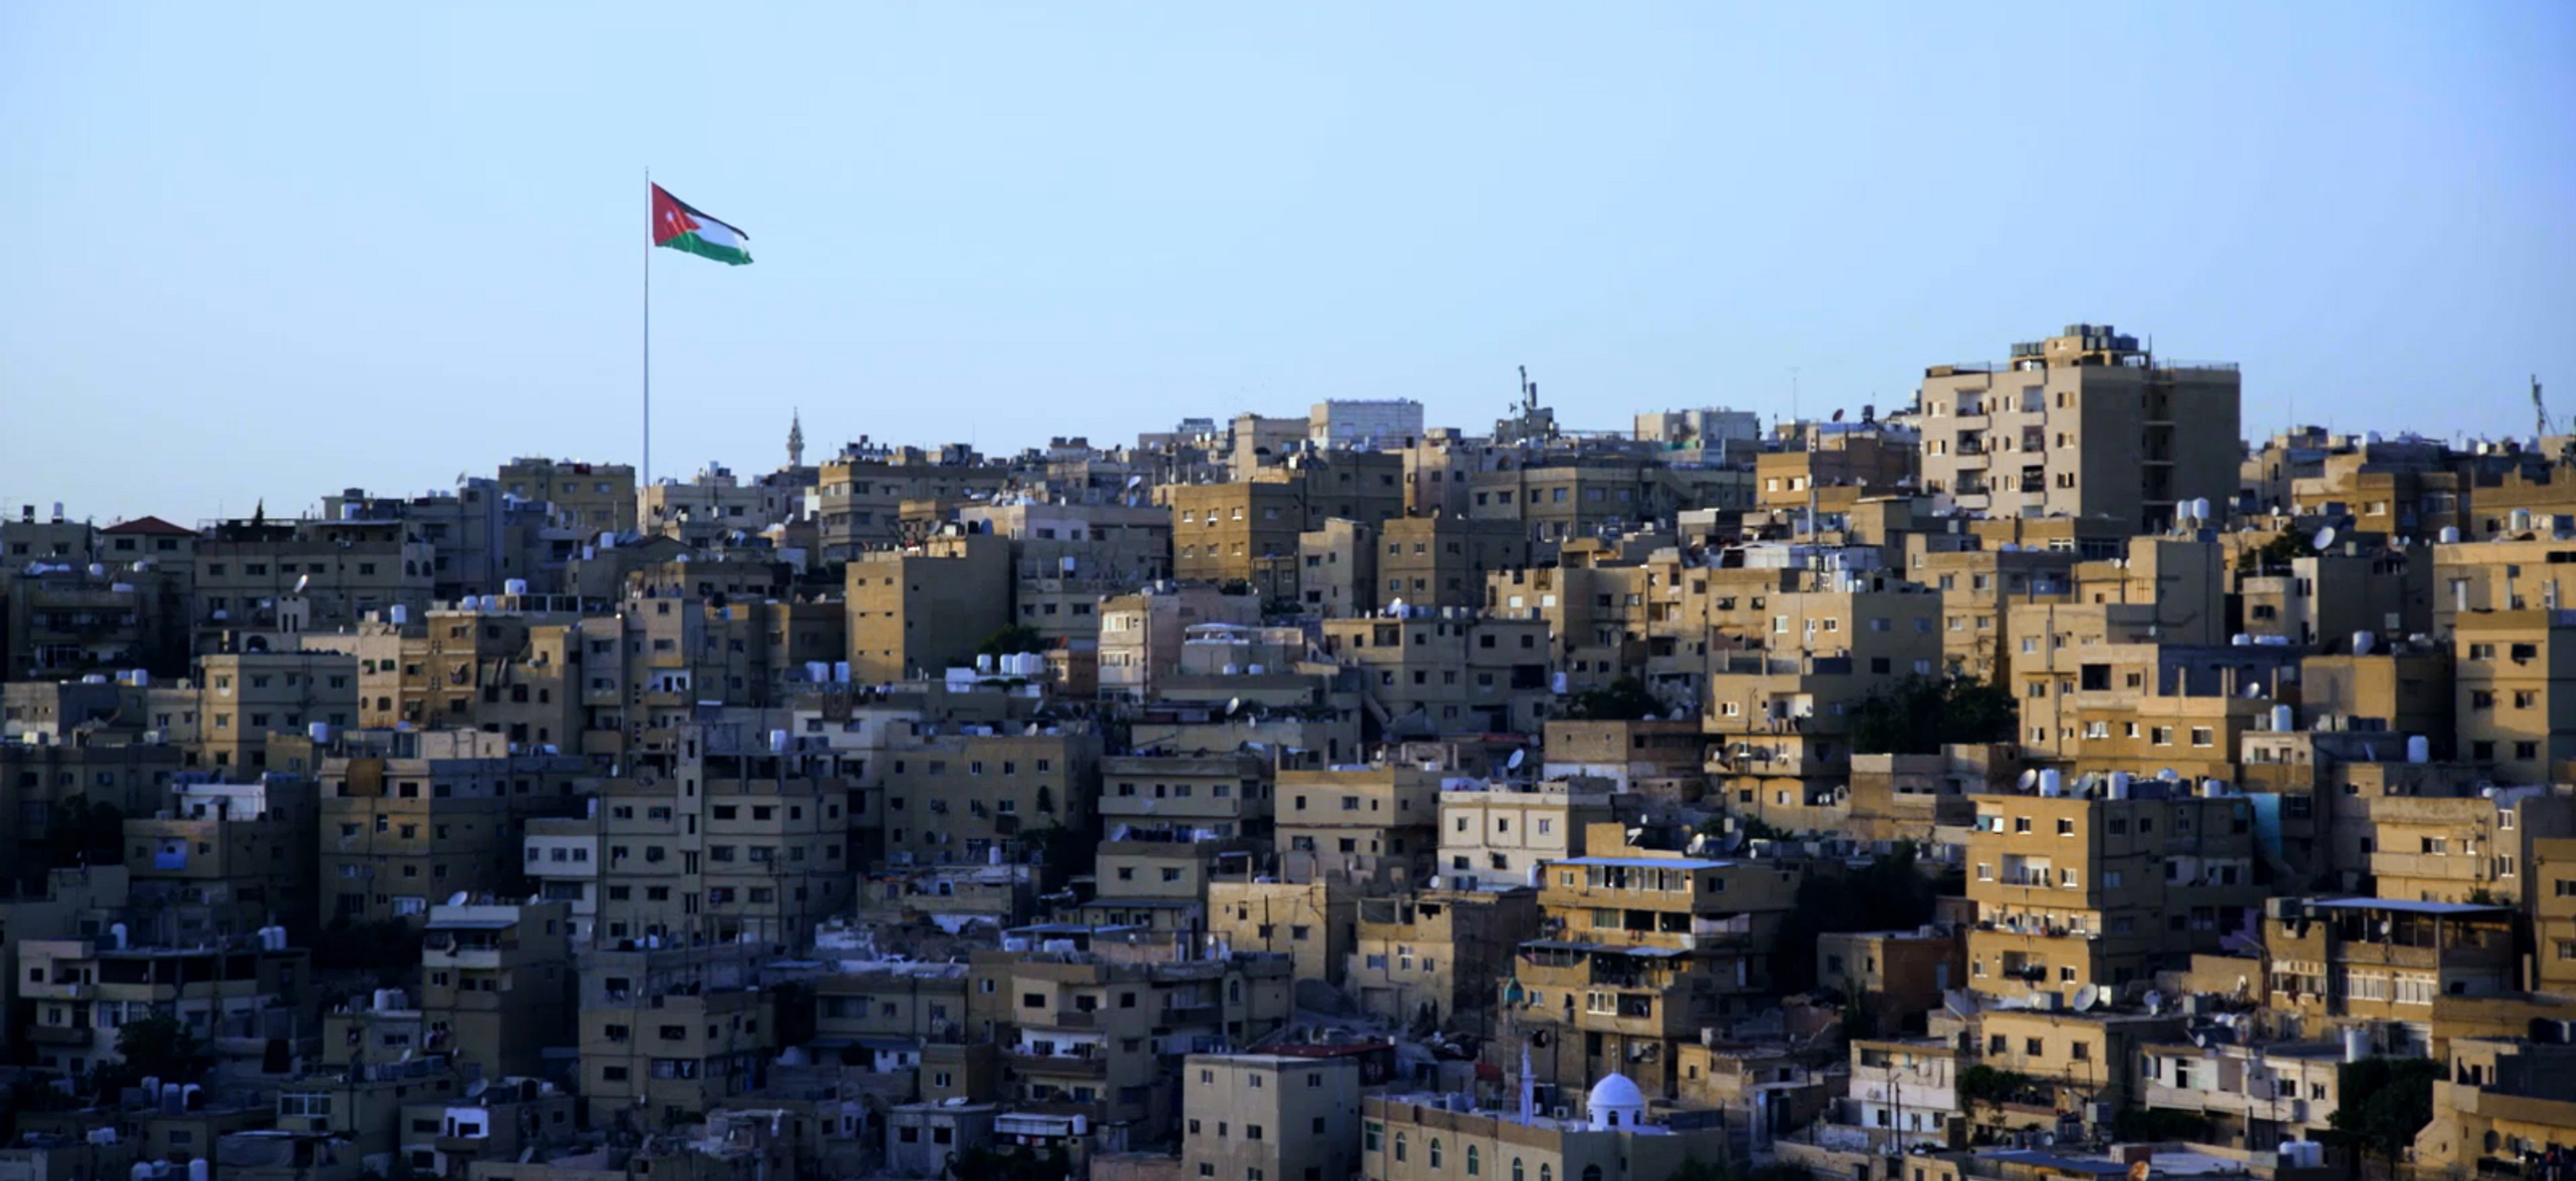 Tan buildings built into a hillside form the Amman cityscape. In the distance, there is a Jordanian flag and a minaret.